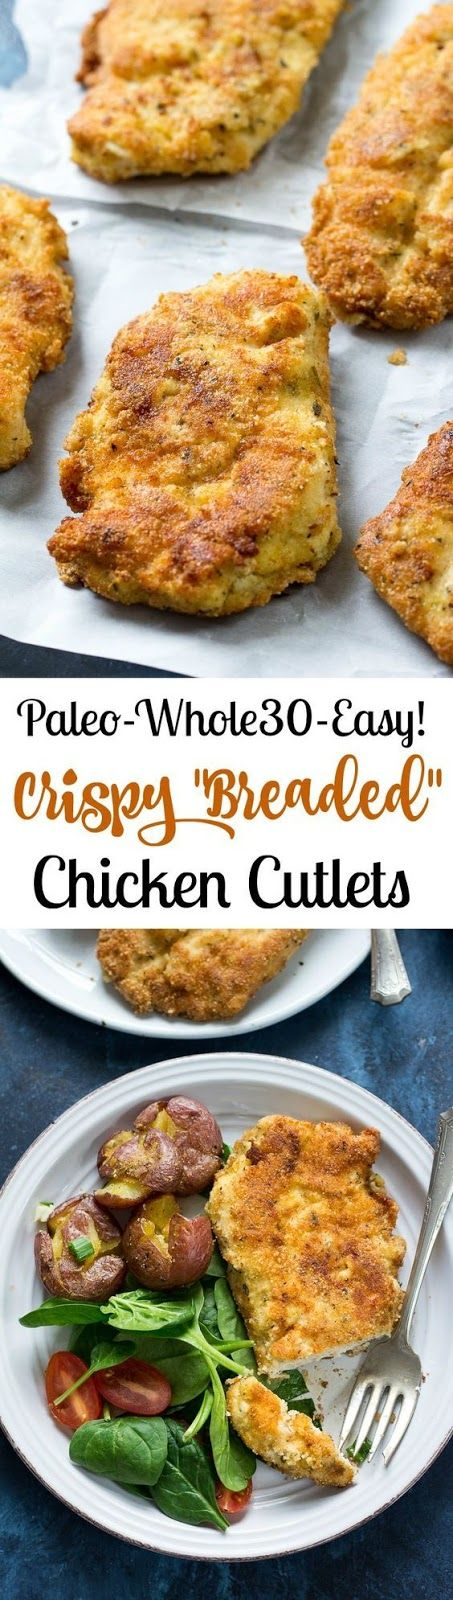 """INGREDIENTS     1.5 lbs boneless, skinless chicken breasts, thin sliced or pounded to ½"""" thickness   1 cup blanched almond flour*   ¼ c..."""